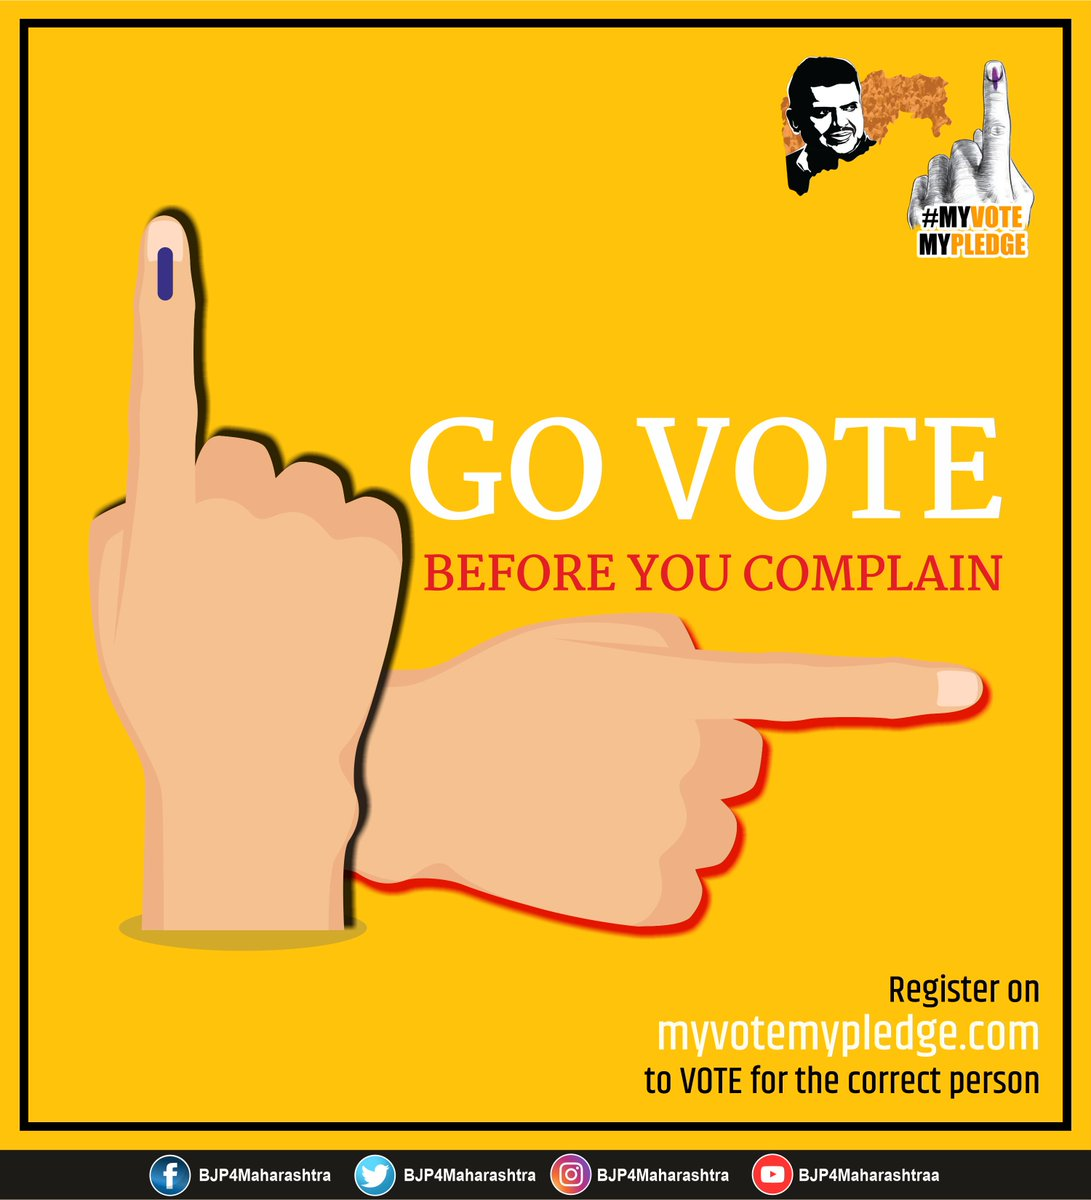 GO VOTE, BEFORE YOU COMPLAIN   Register on  http:// myvotemypledge.com     to VOTE for the correct person  #MyVoteMyPledge<br>http://pic.twitter.com/GWtDxjeT9A